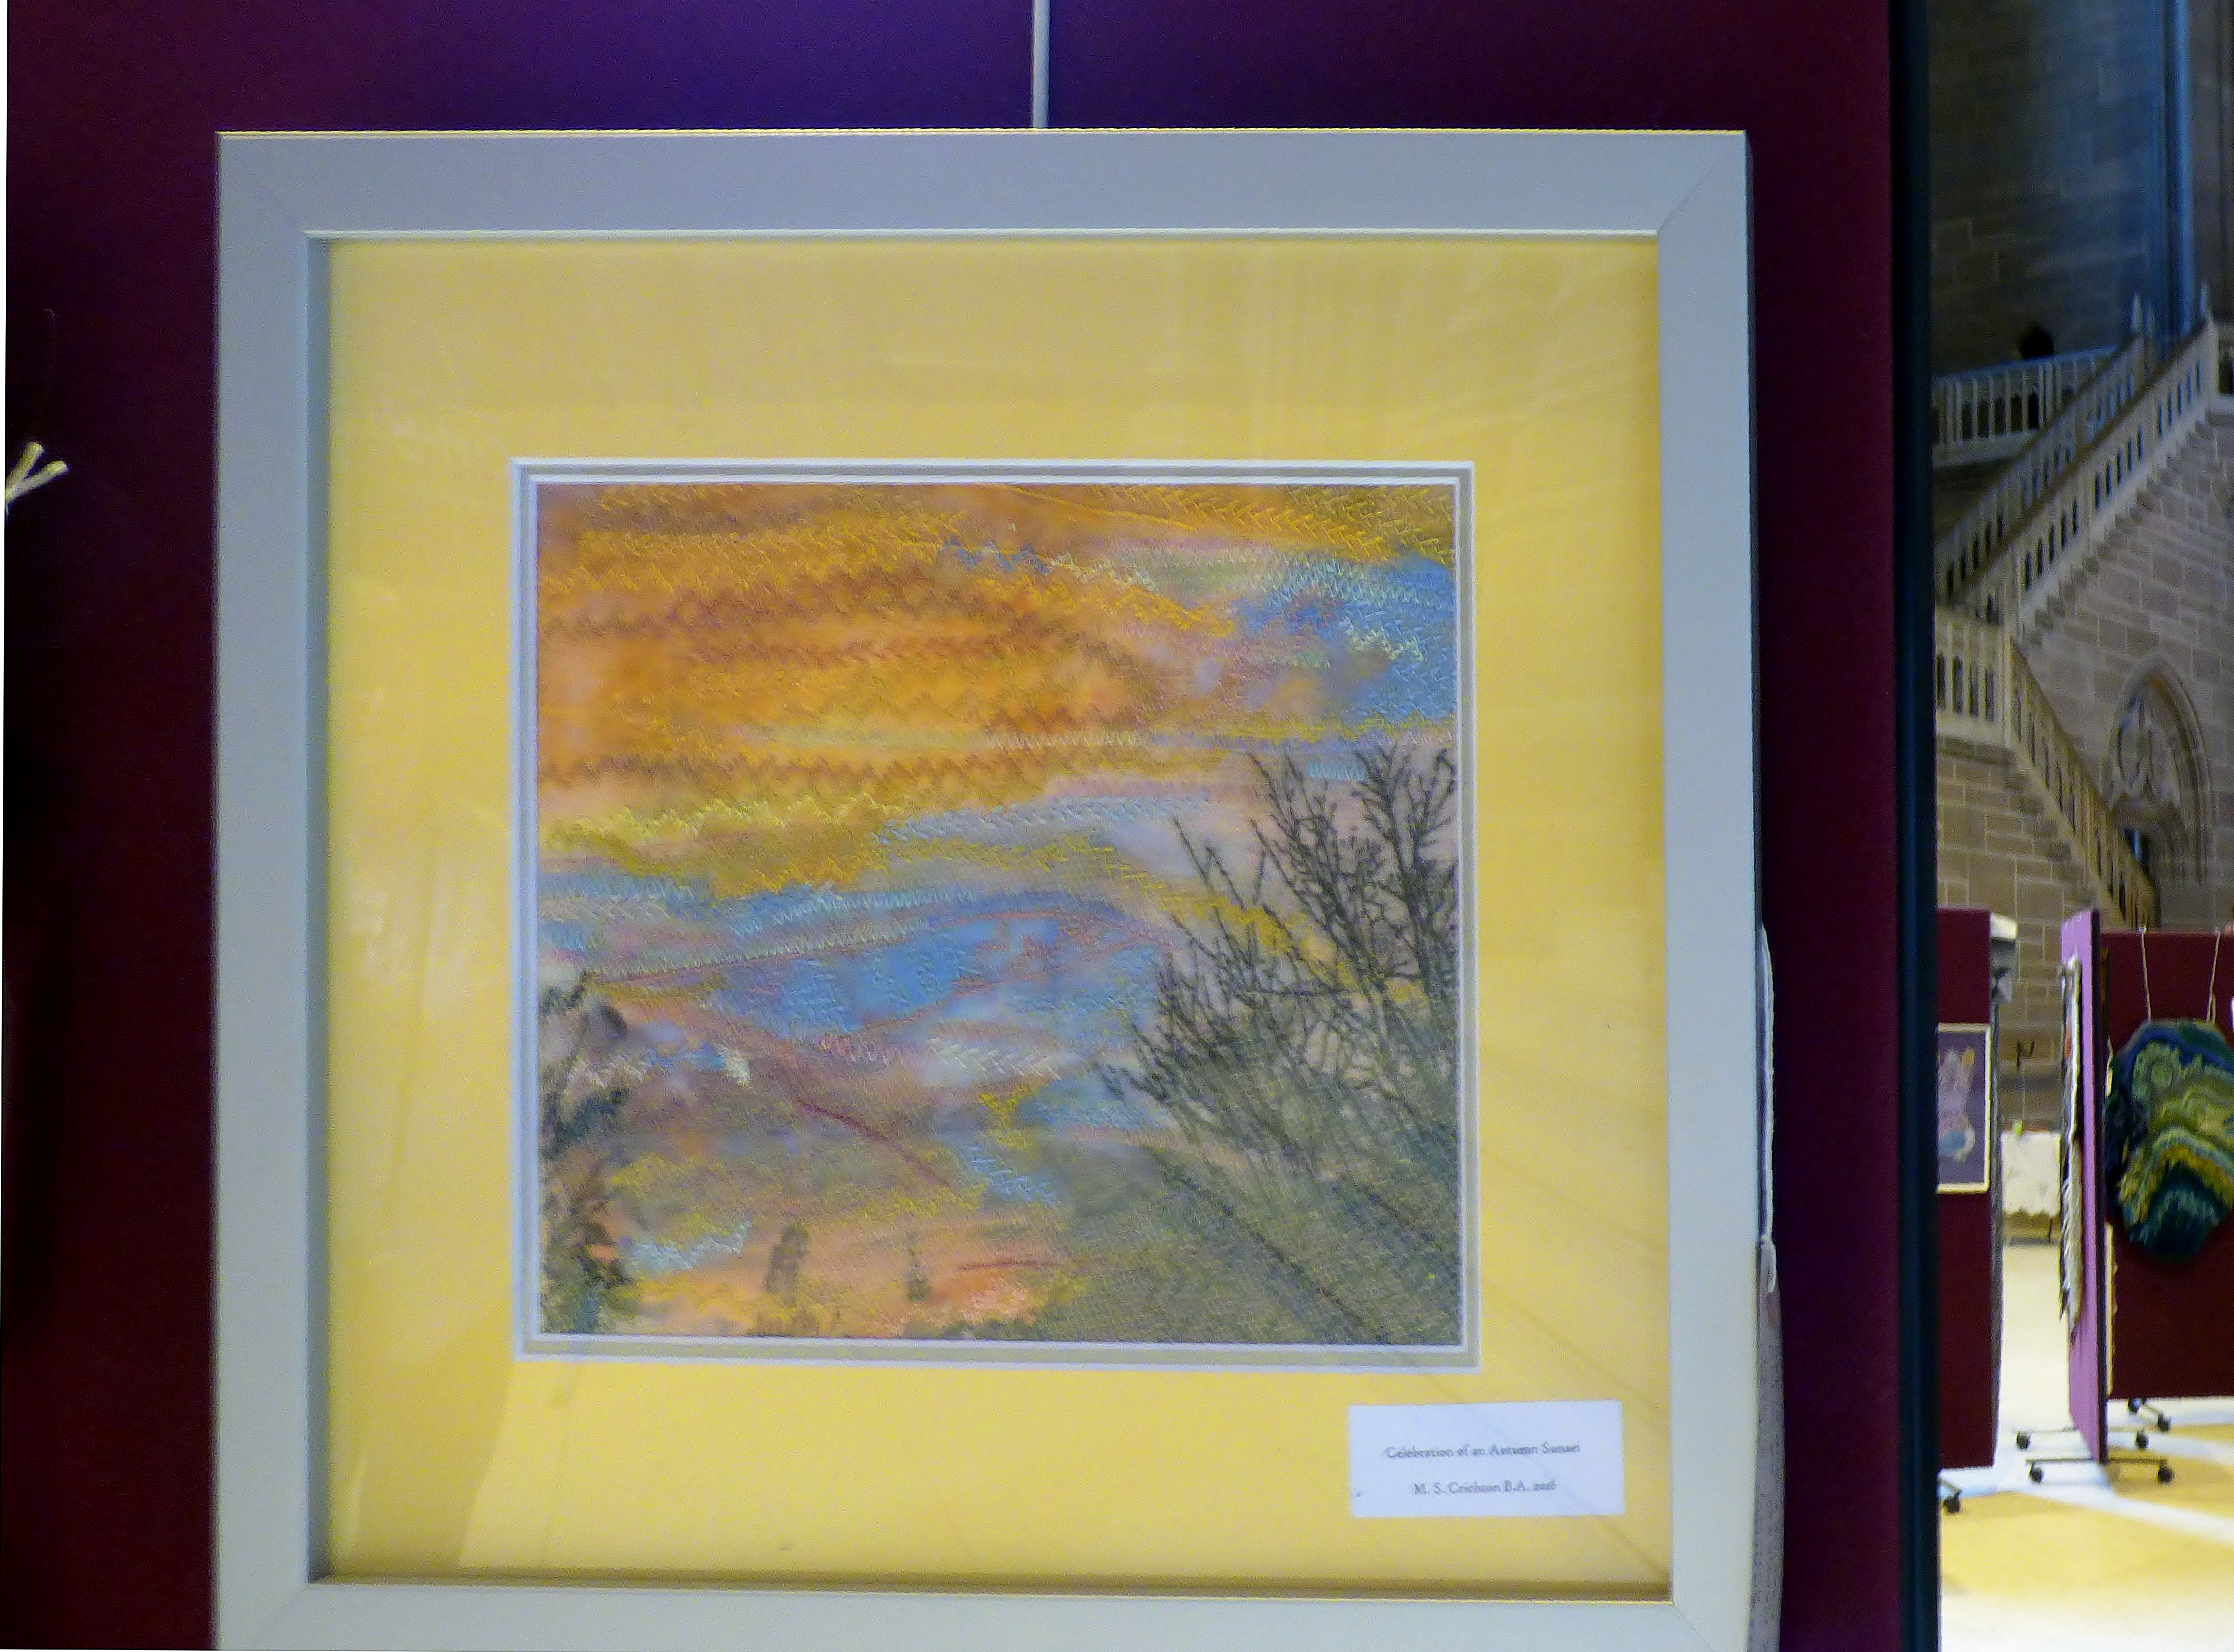 CELEBRATION OF AN AUTUMN SUNSET by Margaret Crichton at 60 Glorious Years exhibition 2016